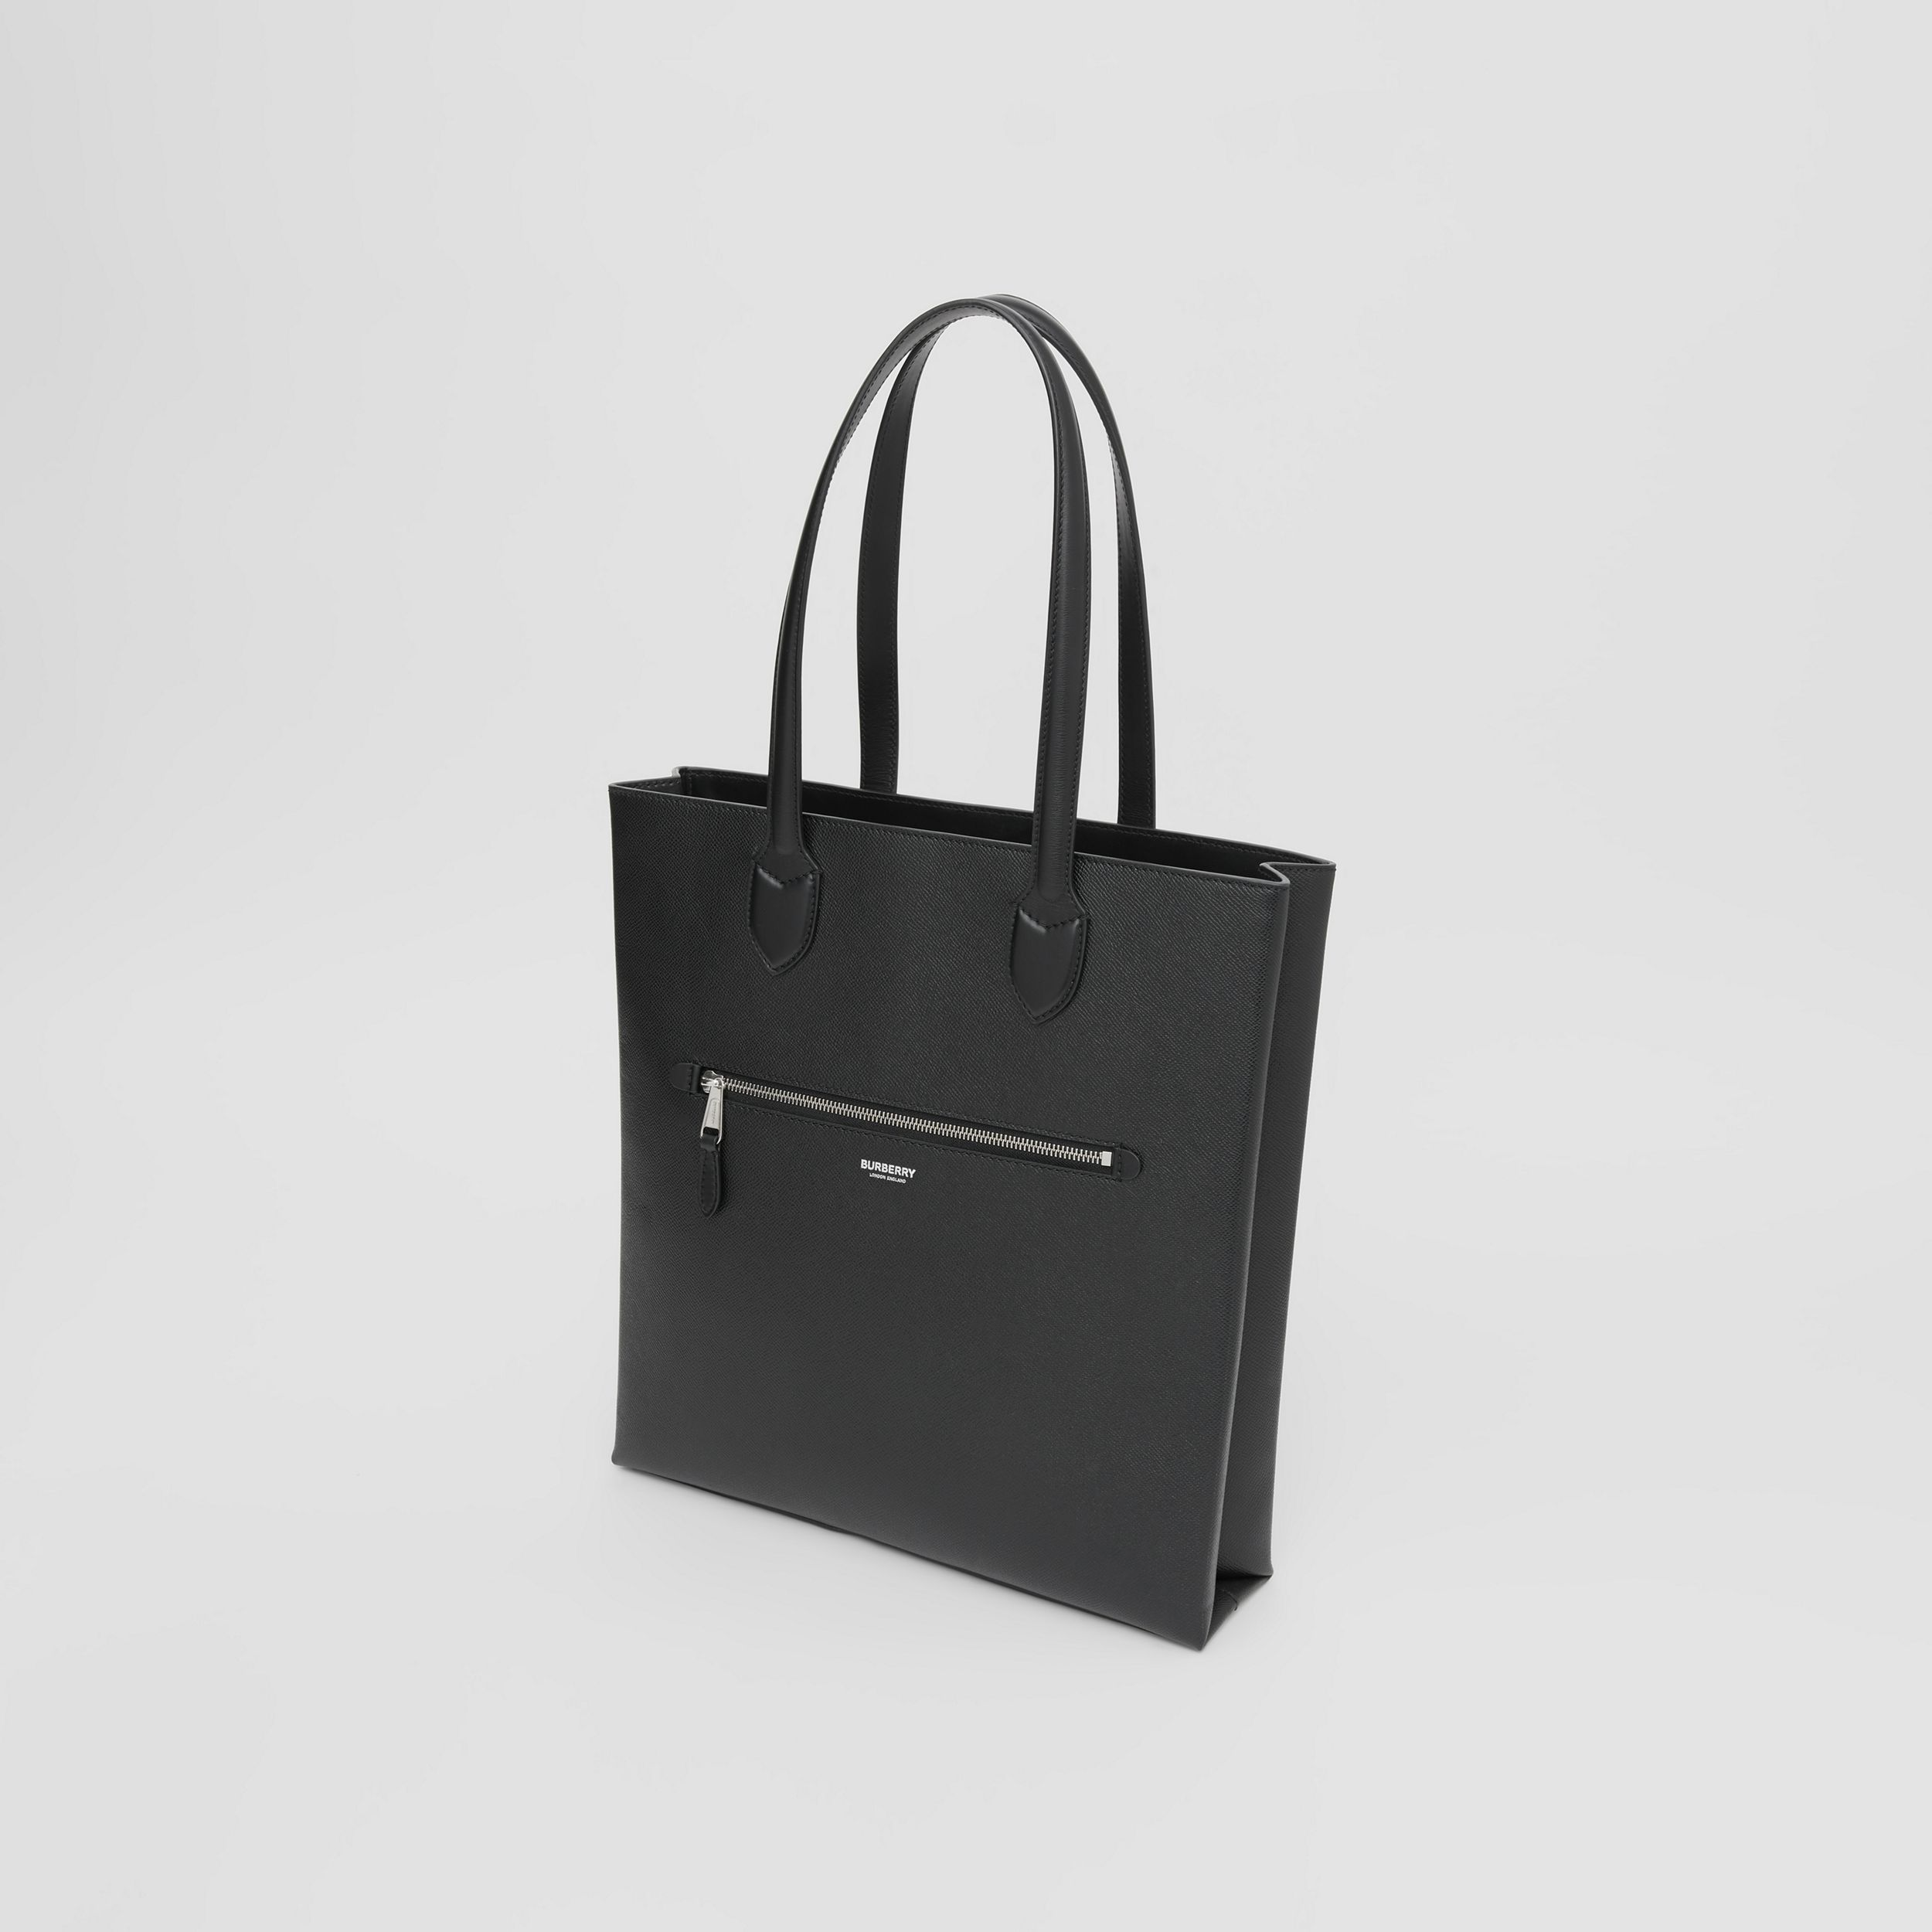 Medium Grainy Leather Tote in Black - Men | Burberry - 4